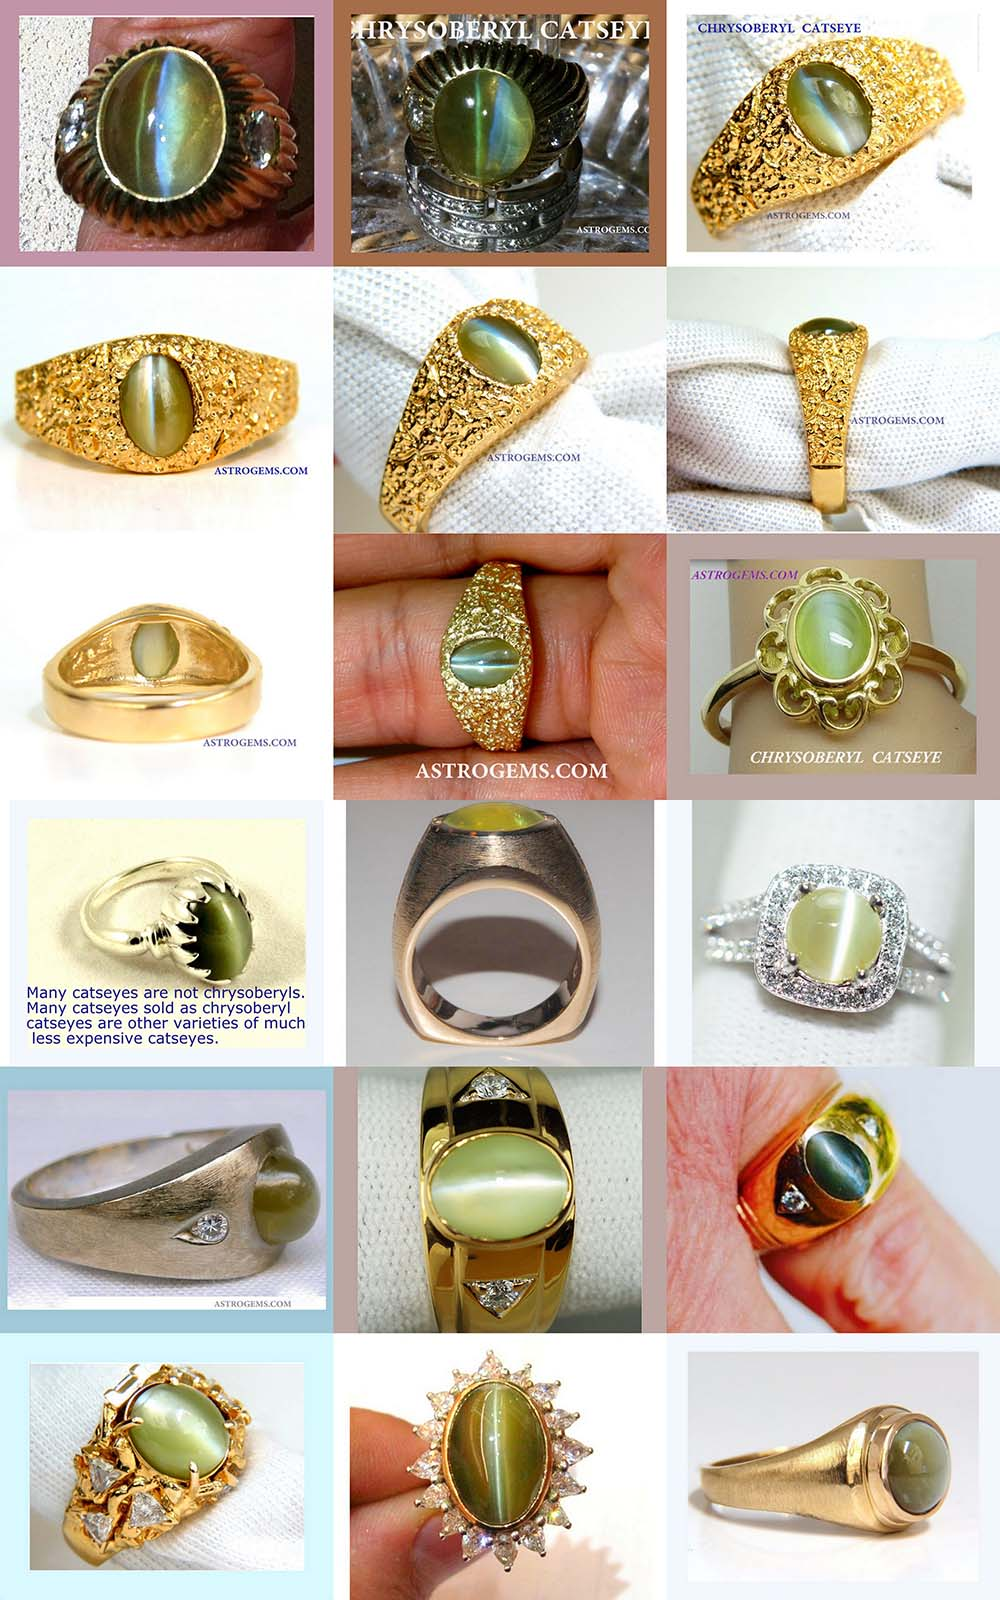 Astrogems can make astrological Chrysoberyl Catseye rings in any style.